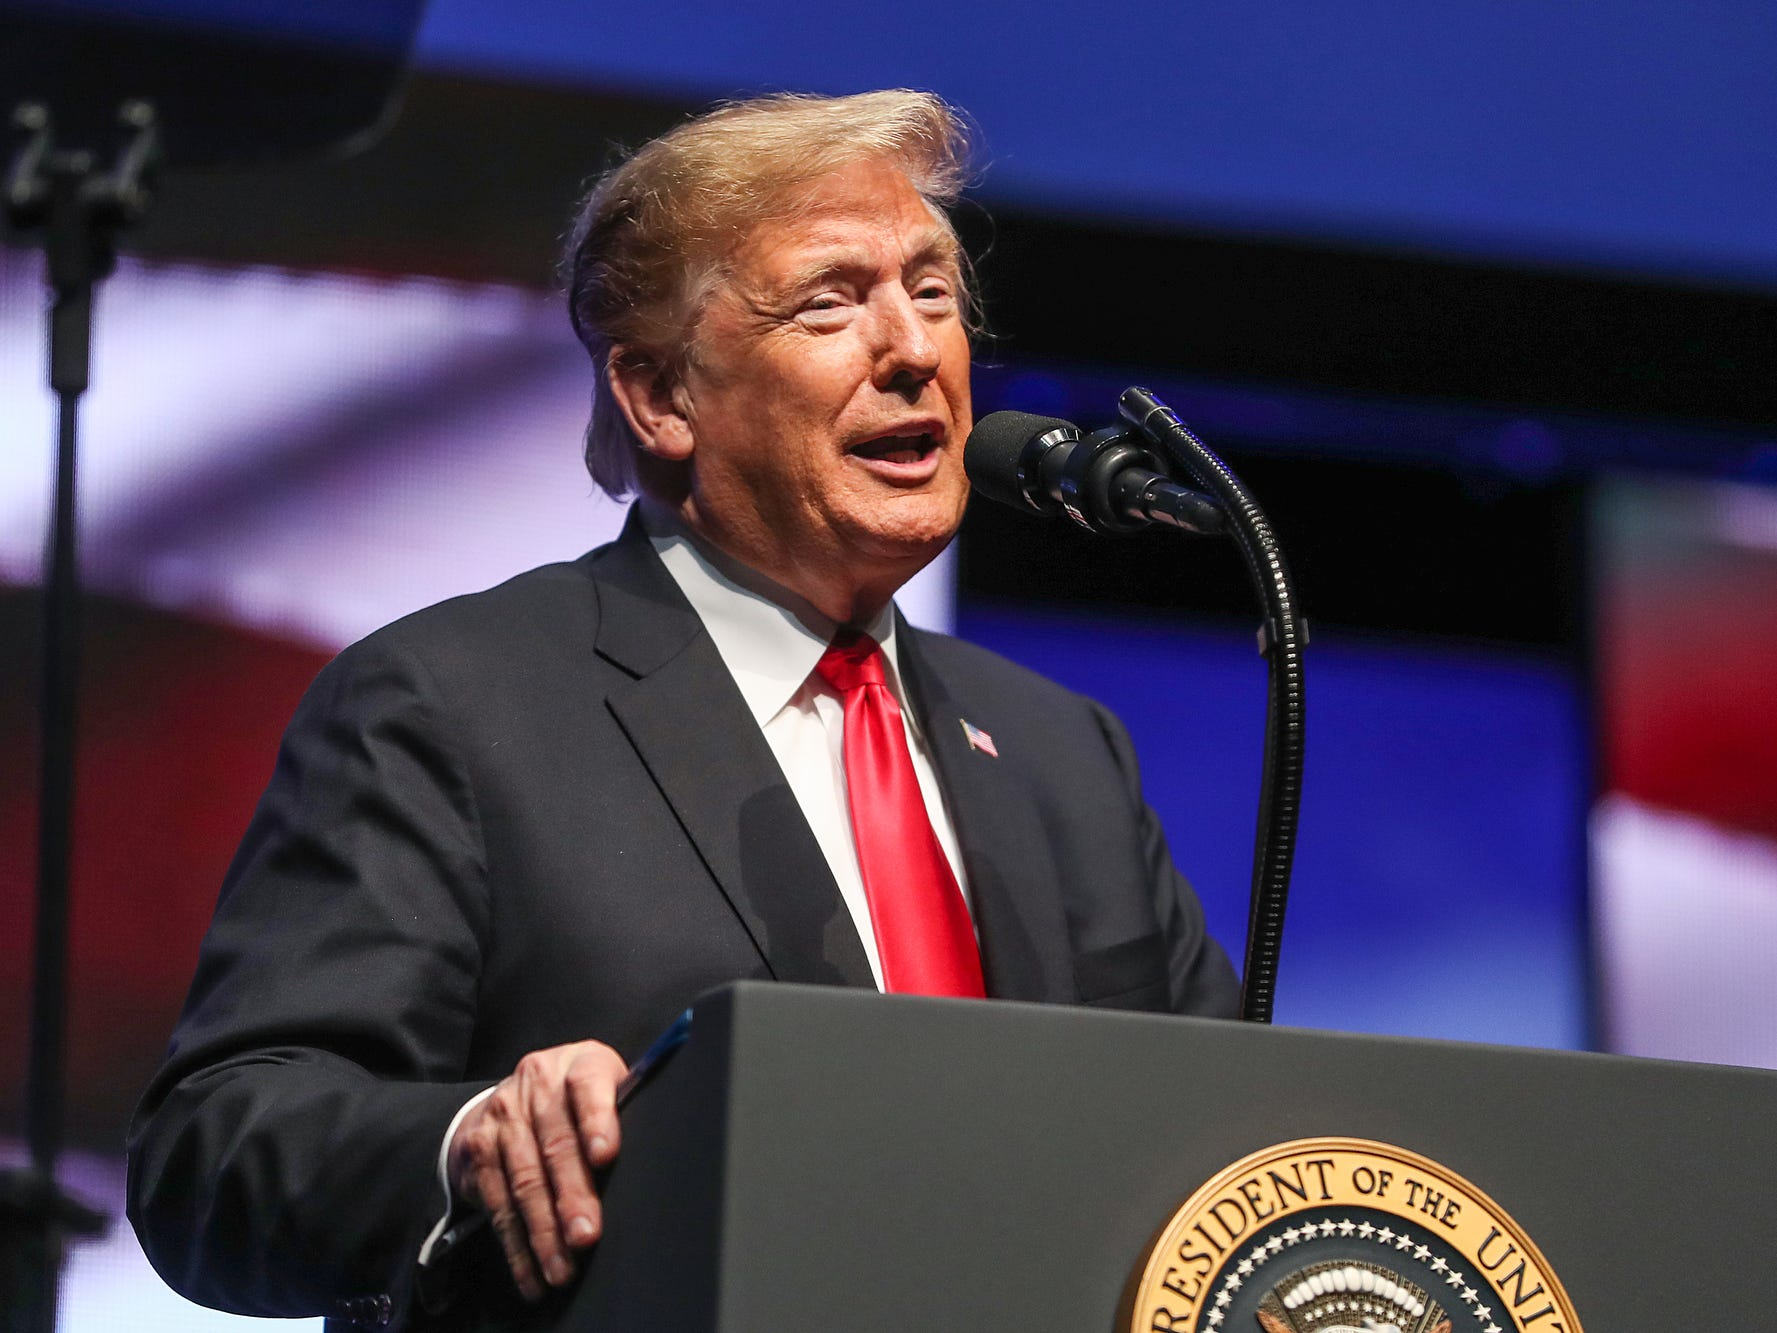 United States President Donald Trump speaks at the annual Future Farmers of America Convention and Expo at Banker's Life Fieldhouse in Indianapolis, Saturday, Oct. 27, 2018.